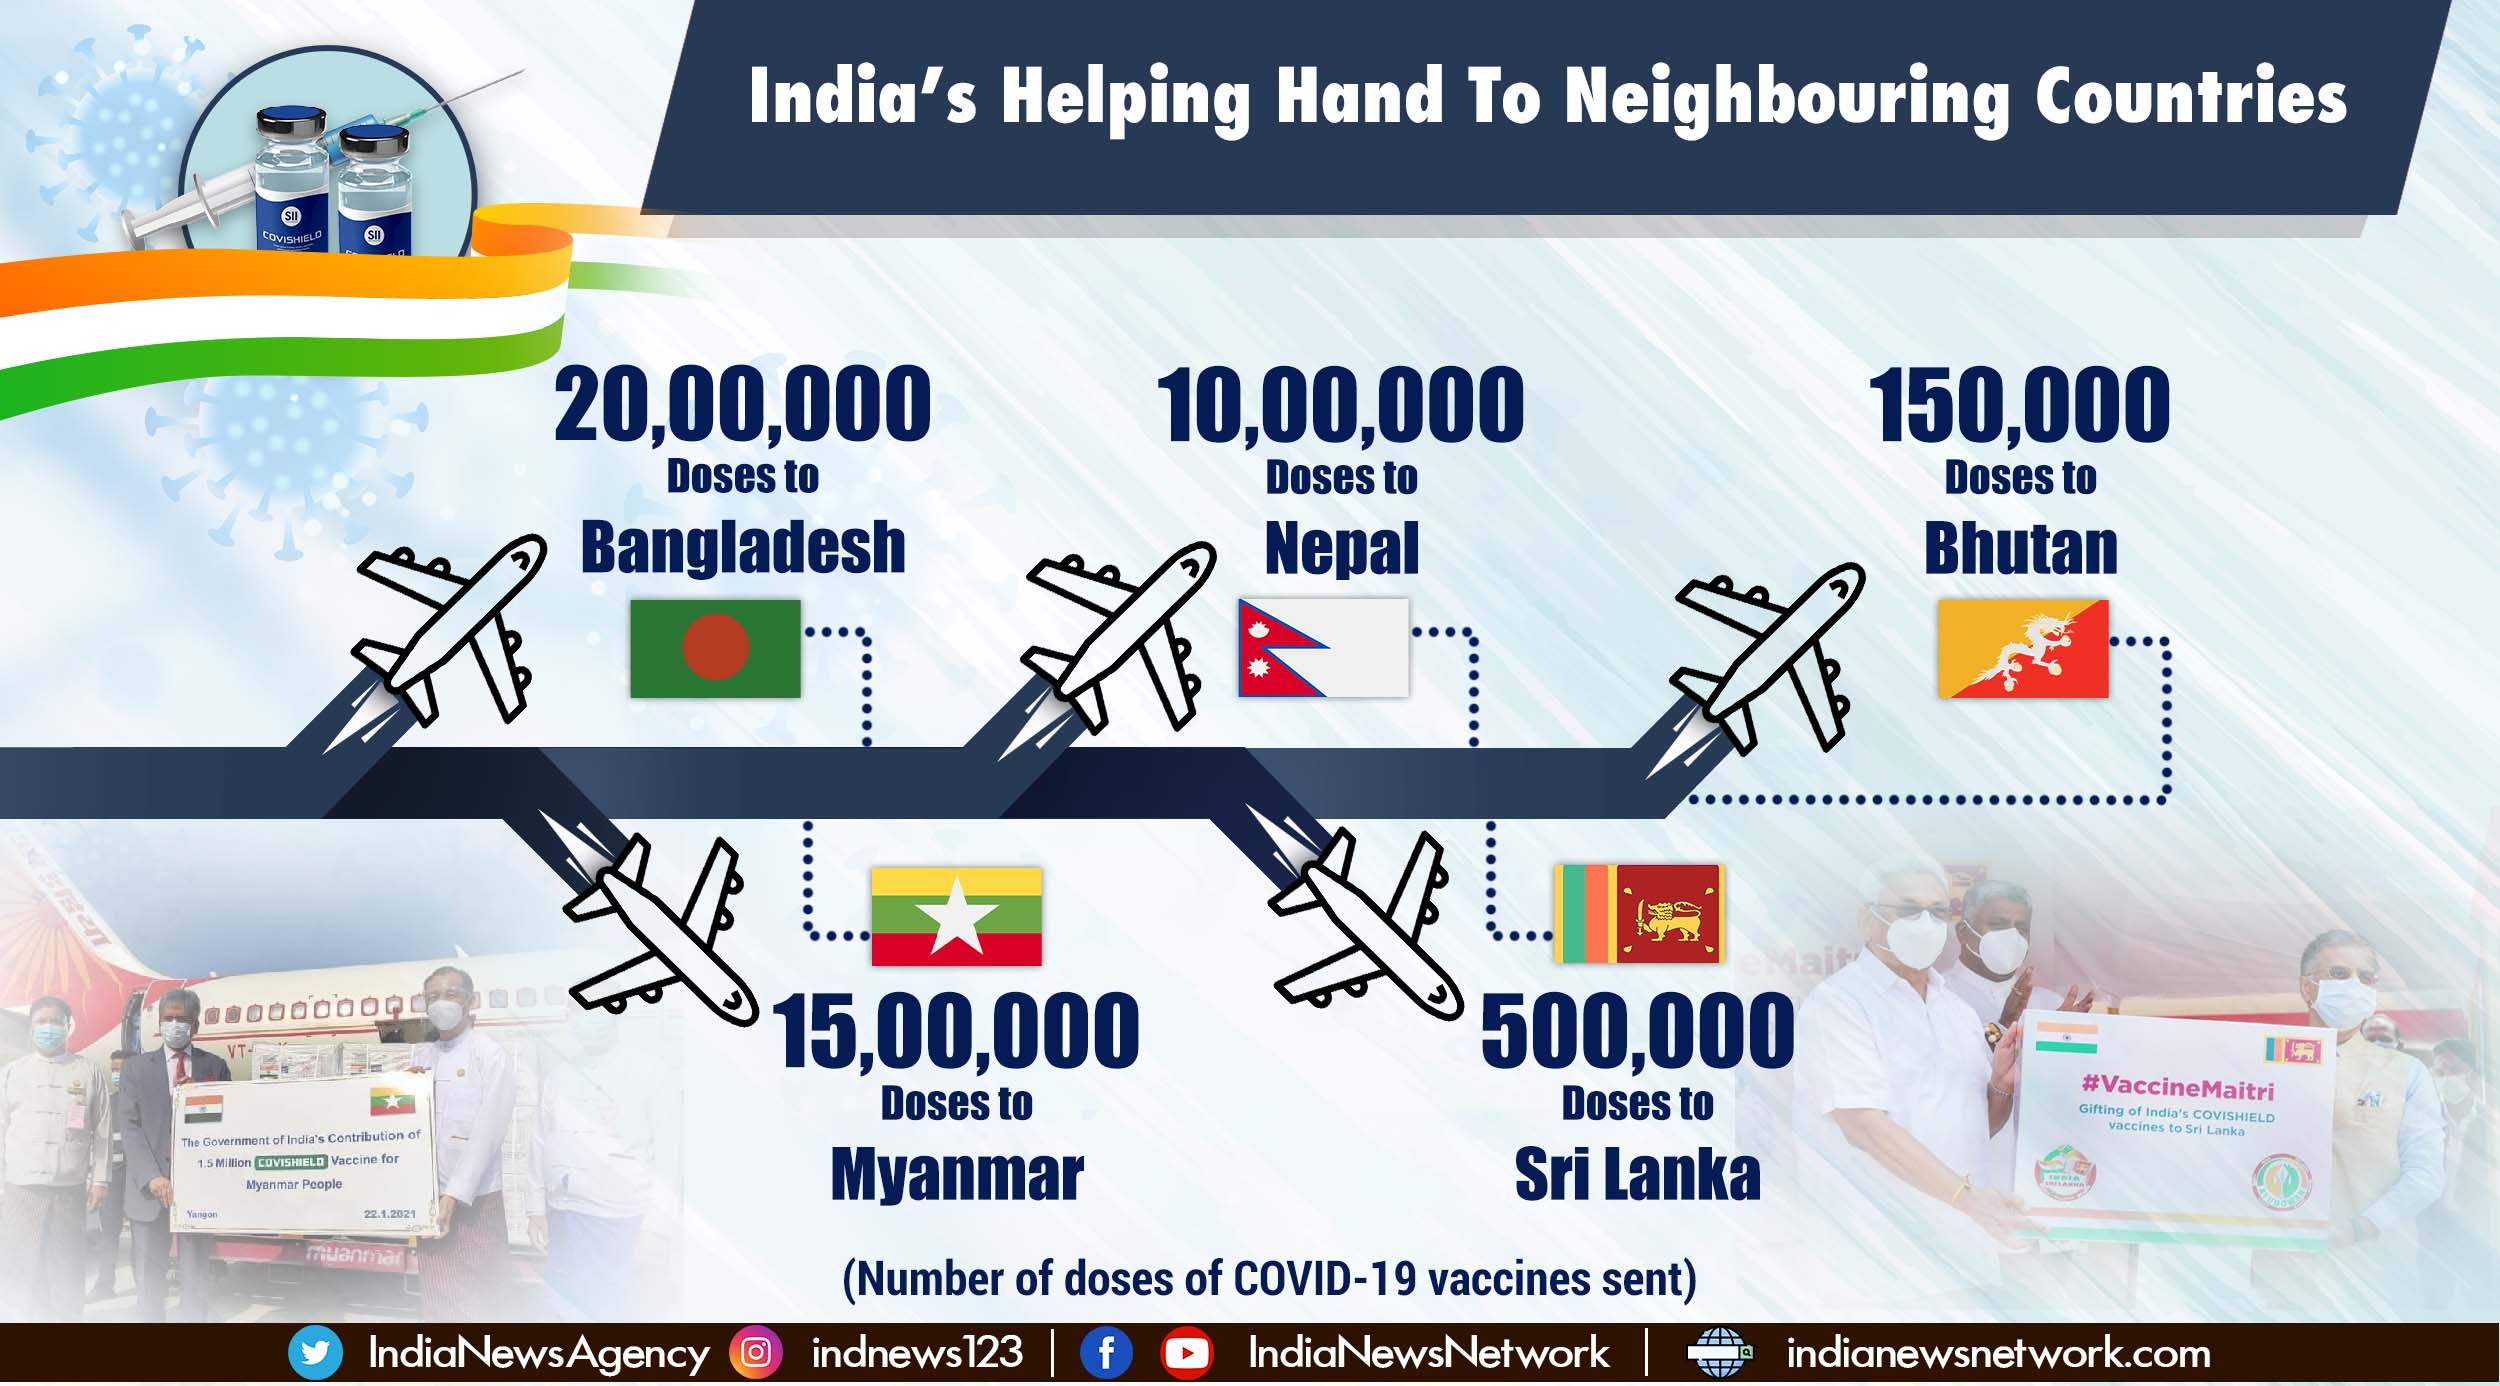 India has reached out to 17 countries under its vaccine diplomacy